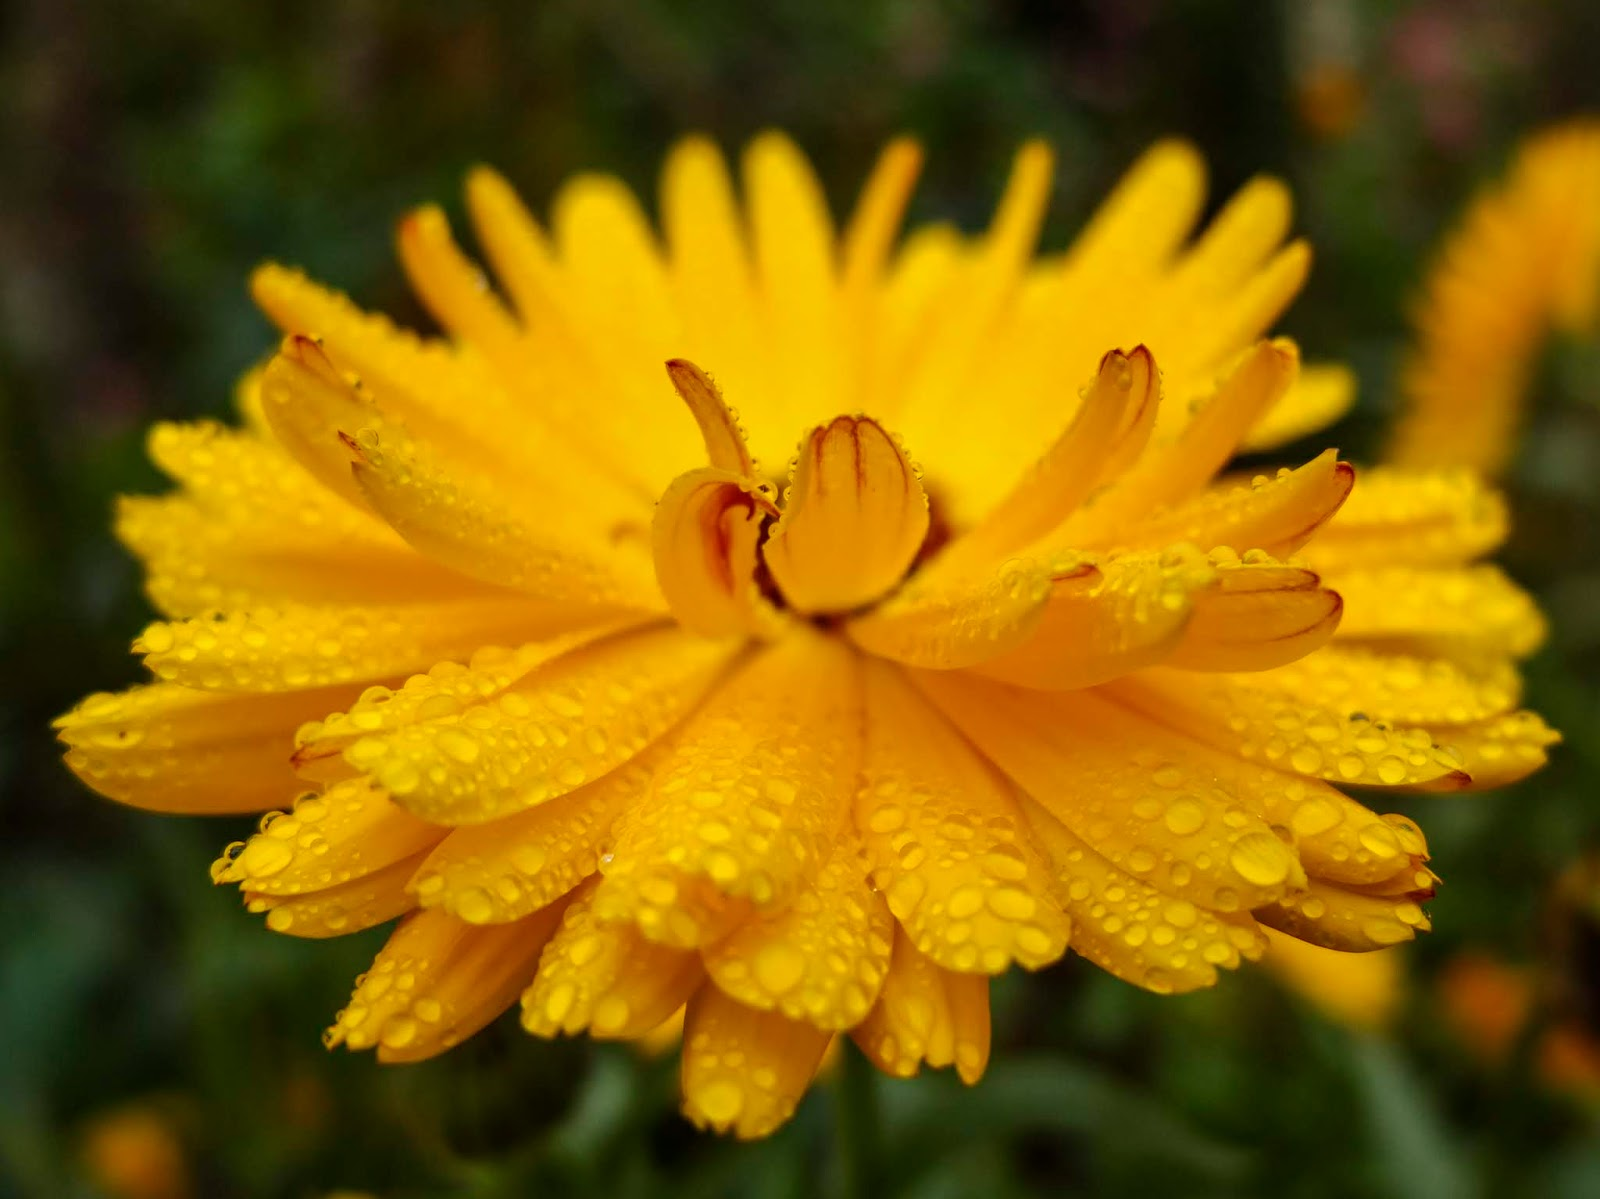 A close up of rain drops on the petals of a yellow Calendula flower.